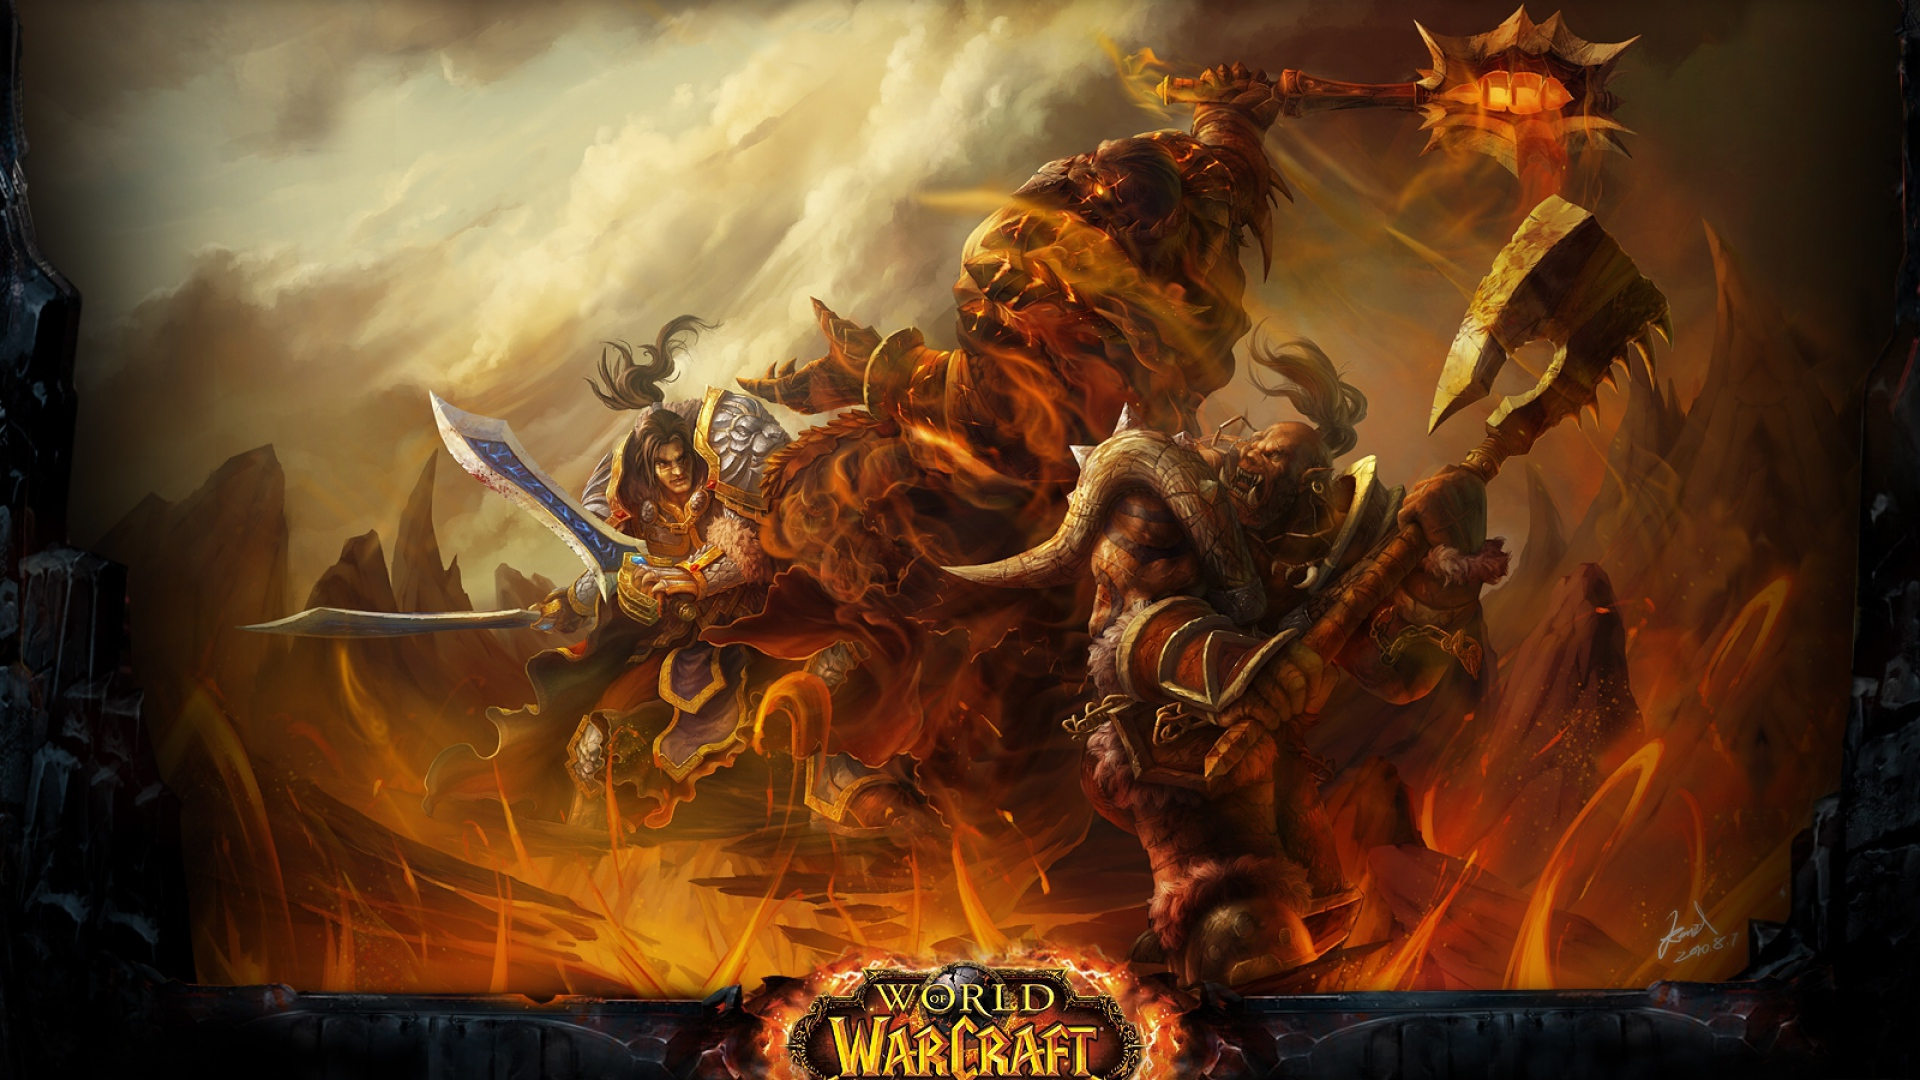 Pic hot warcraft for wallpaper porno pic